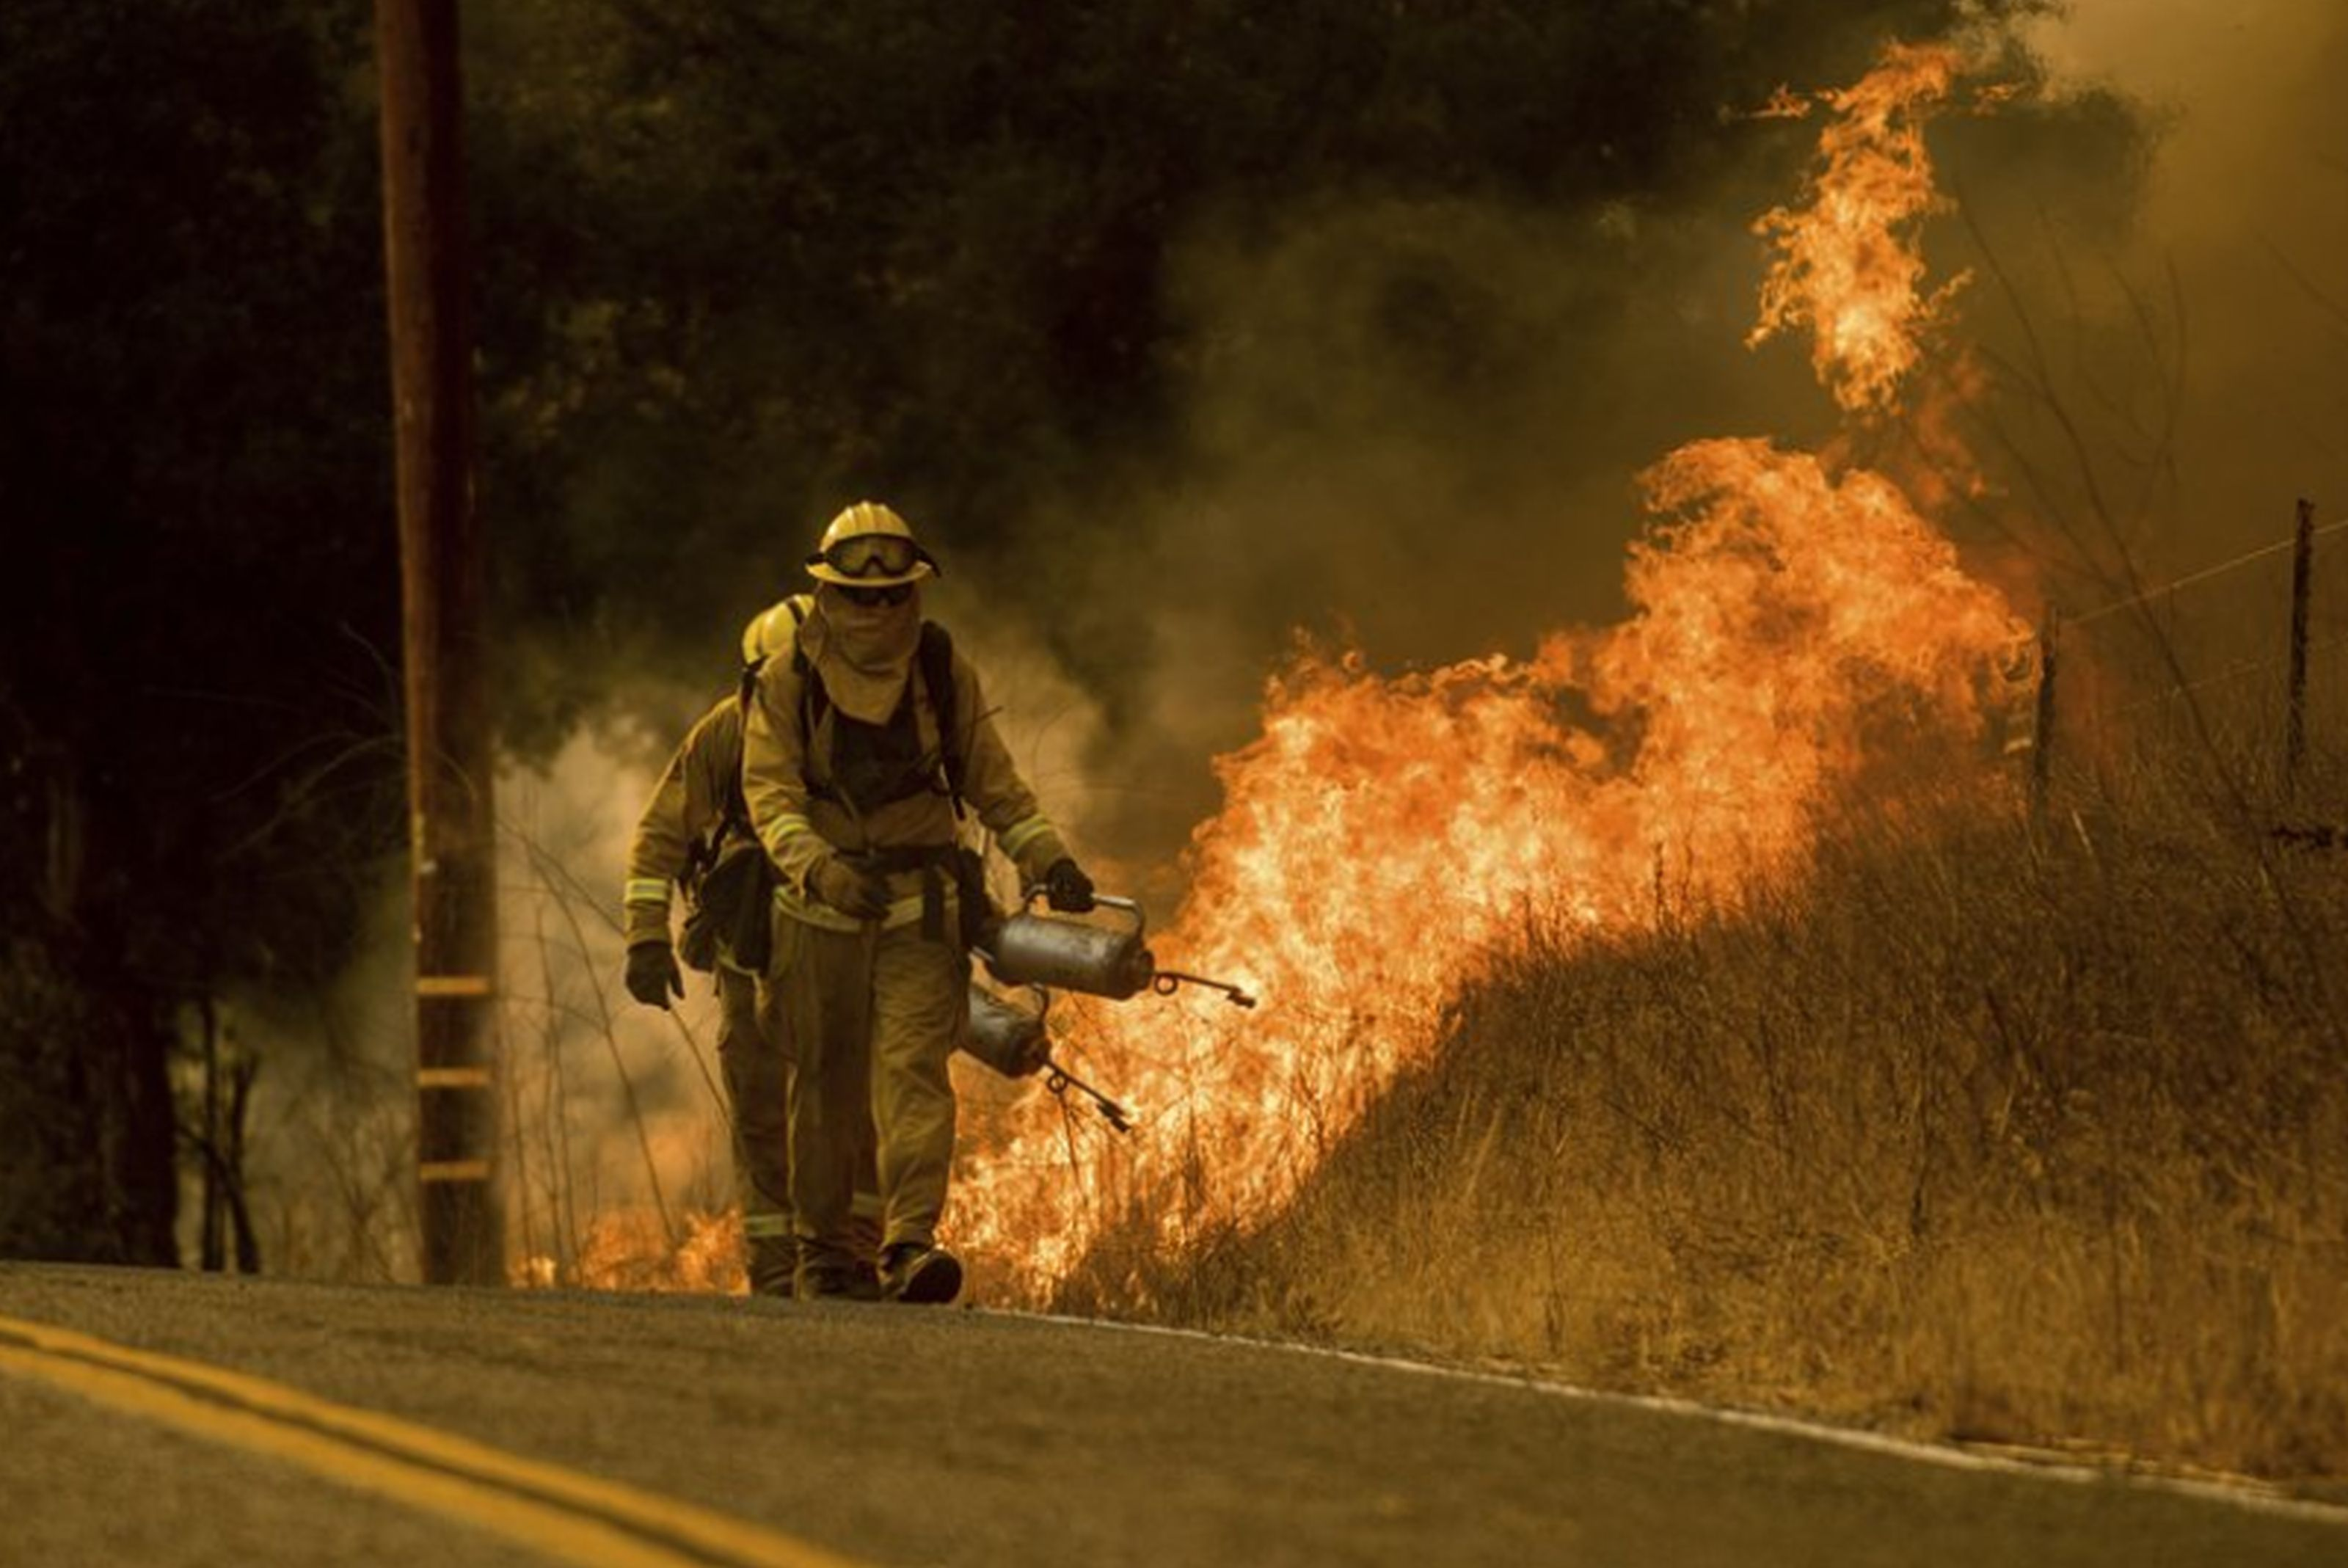 Firefighters light backfire while trying to keep a wildfire from jumping Santa Ana Road near Ventura, Calif. AP NEWSWIRE/Noah Berger